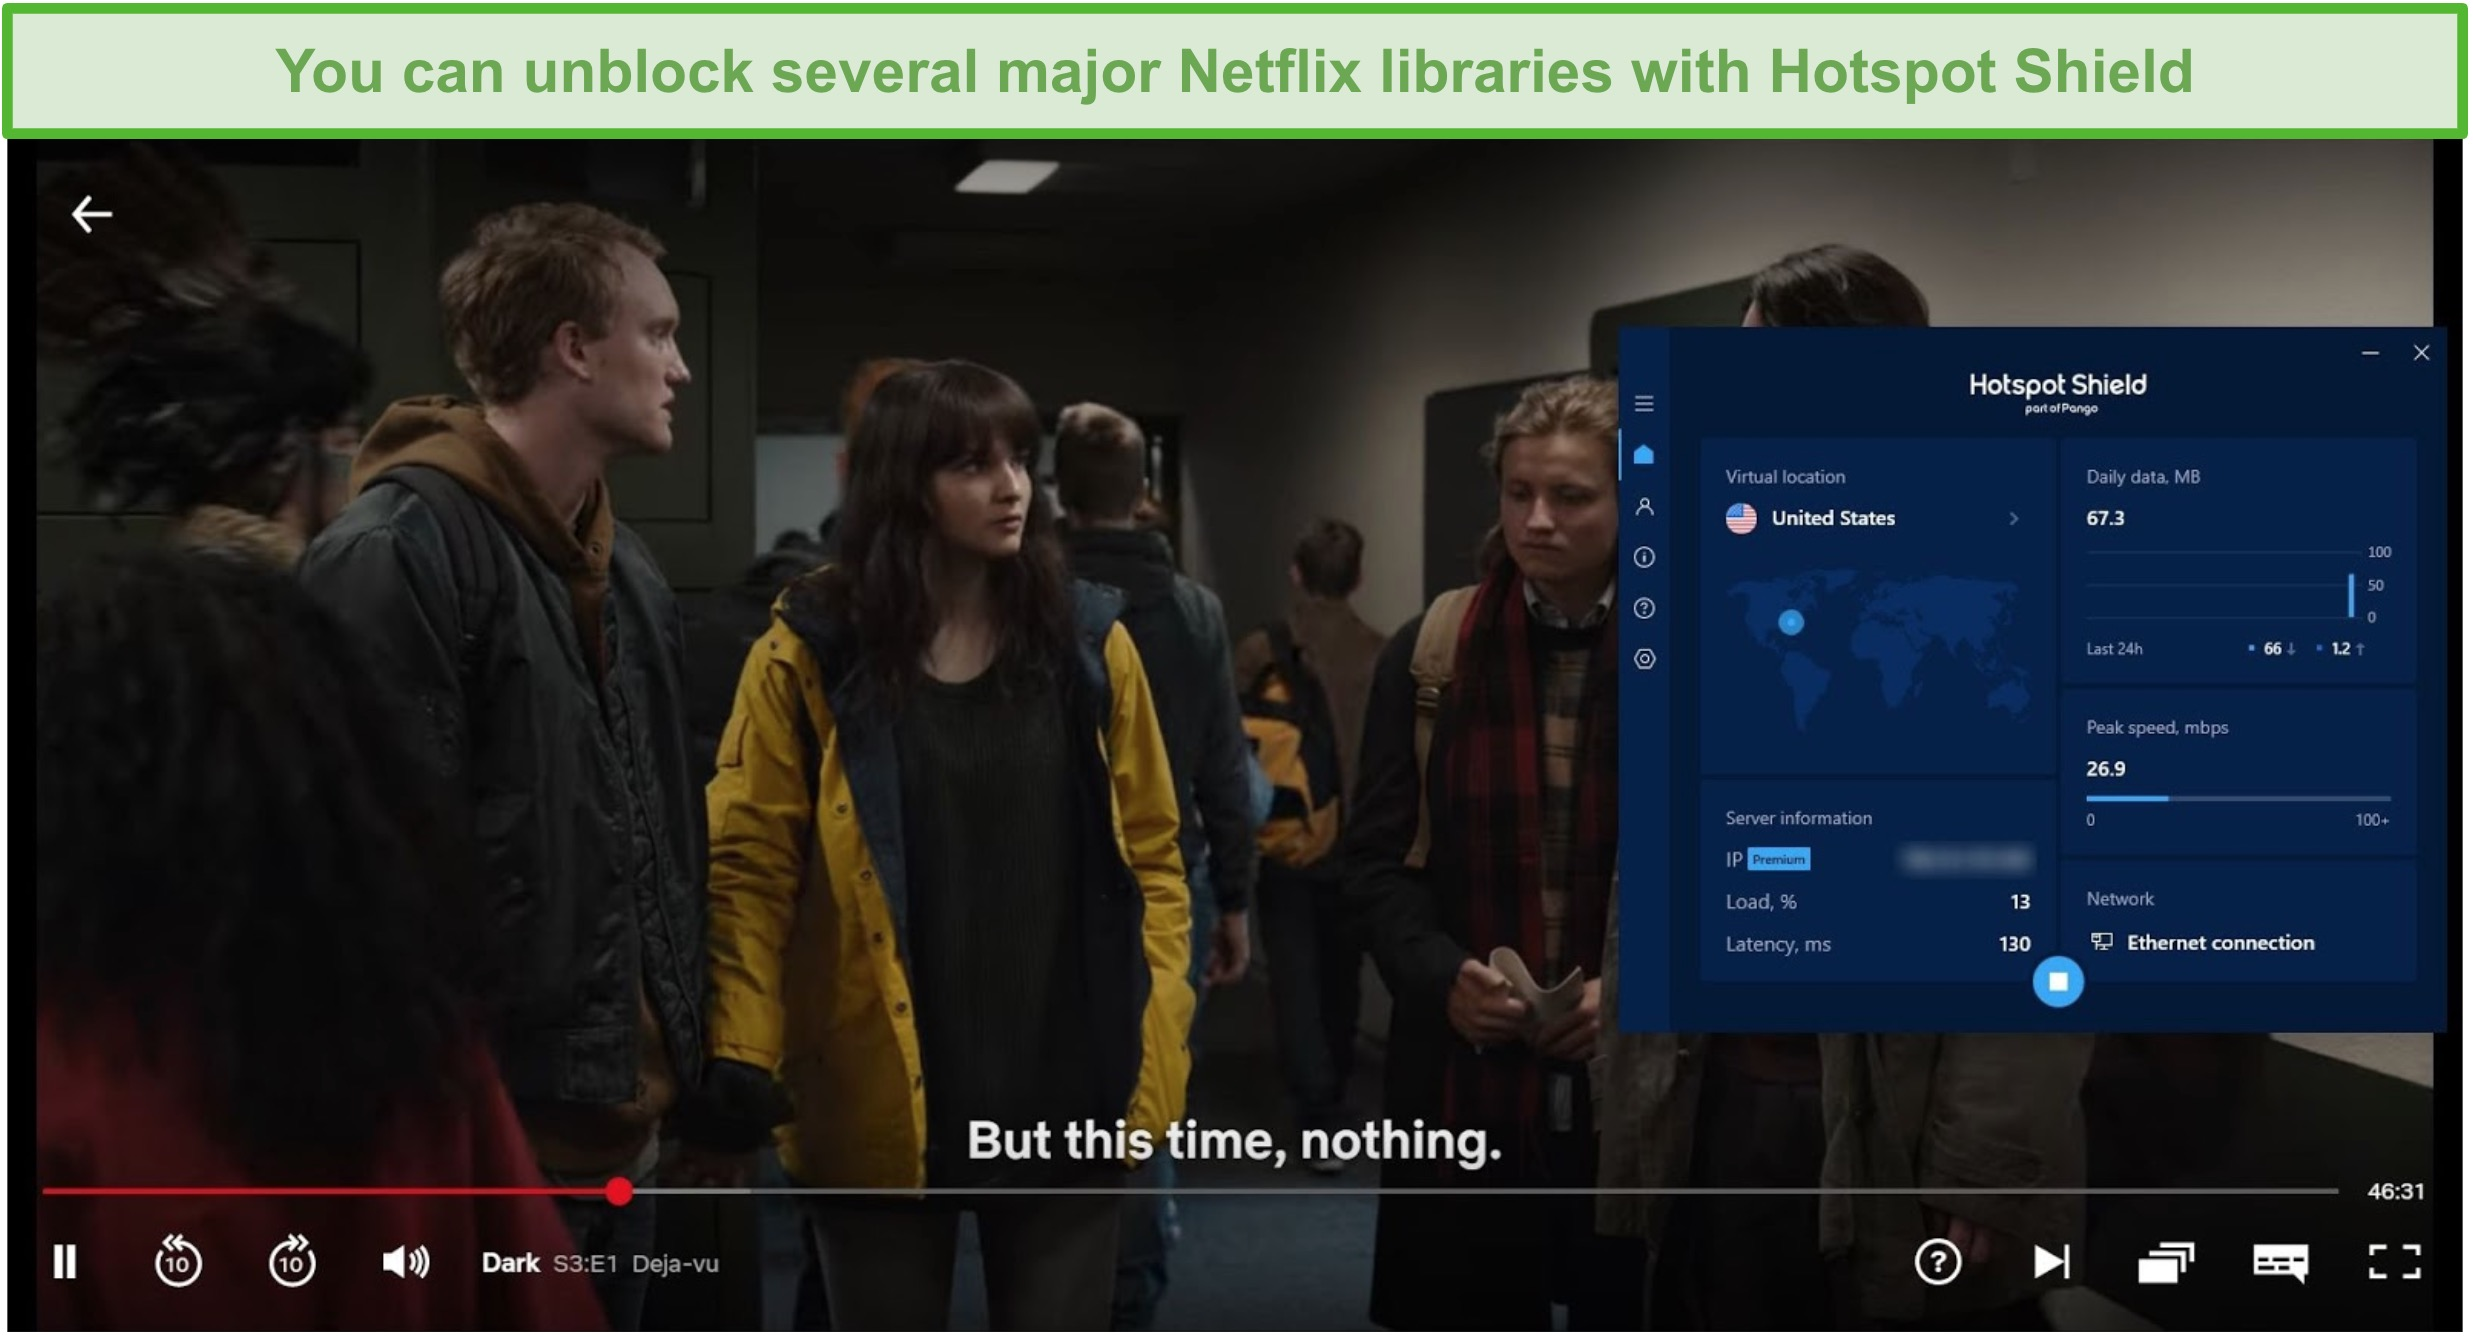 Screenshot of Hotspot Shield unblocking Netflix and streaming Dark.